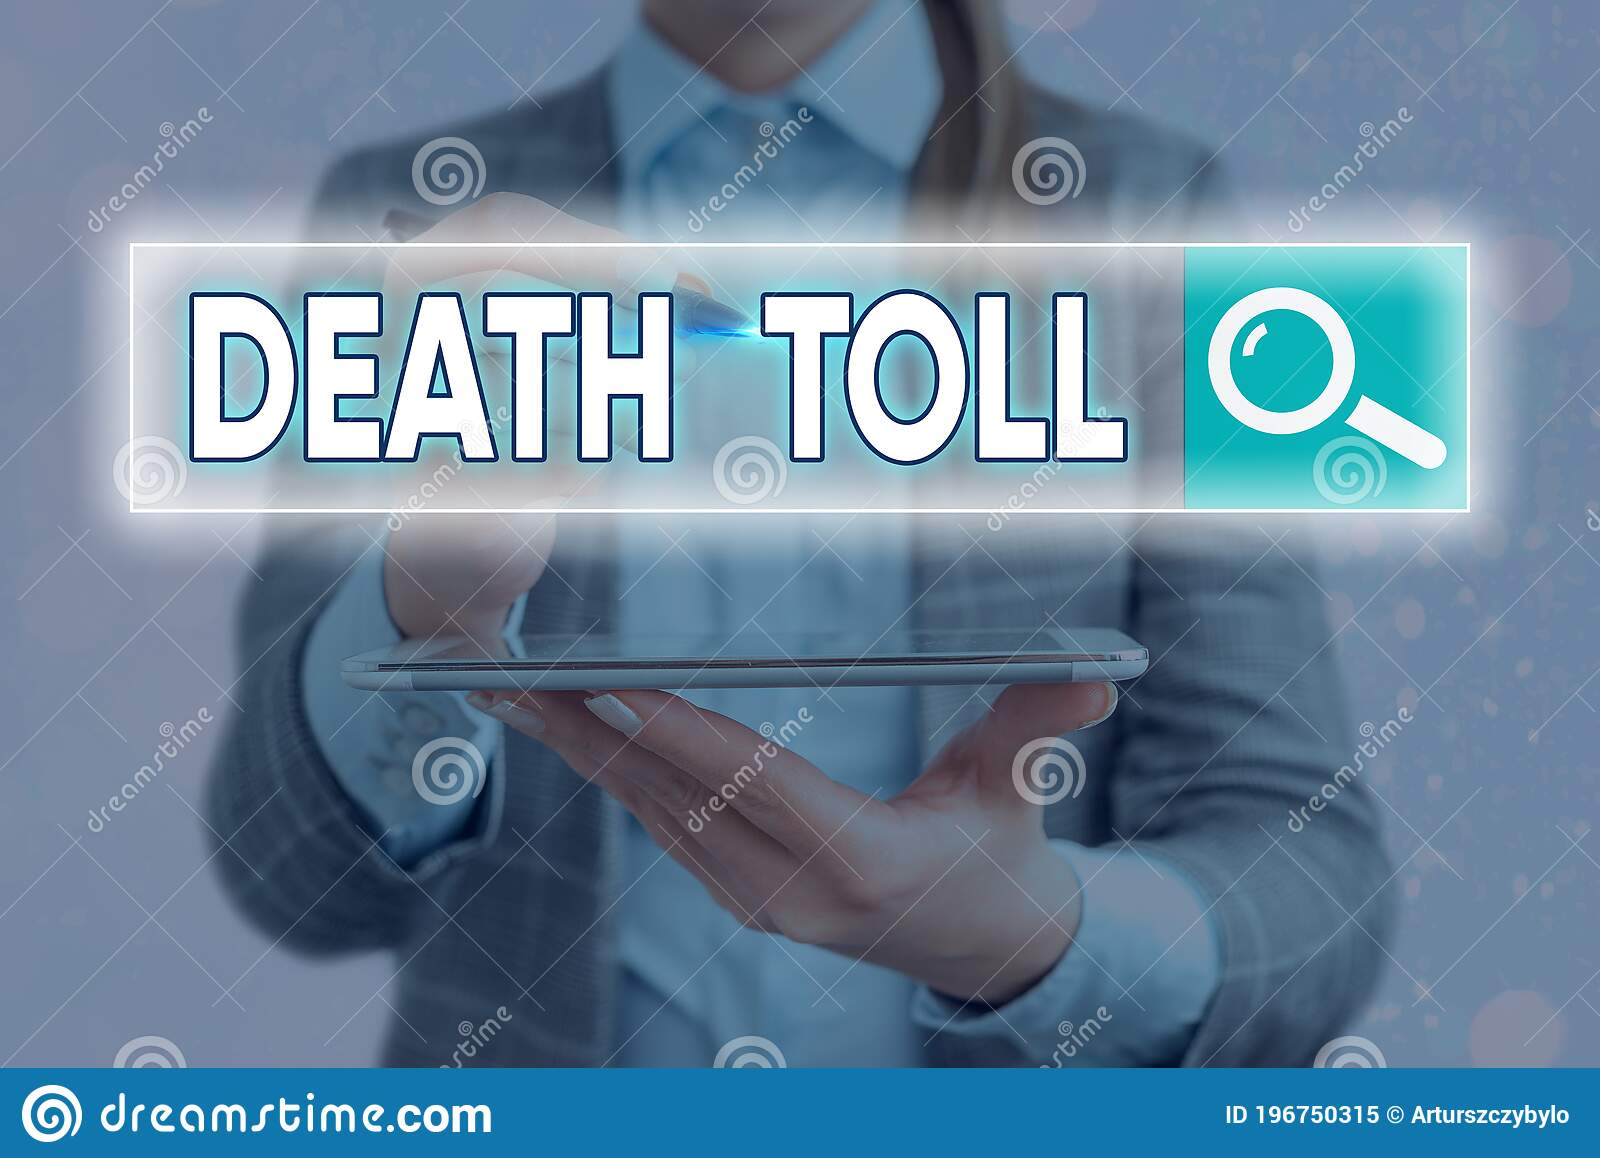 Handwriting Text Writing Death Toll Concept Meaning The Number Of Deaths Resulting From A Particular Incident Web Stock Image Image Of Accident Loss 196750315